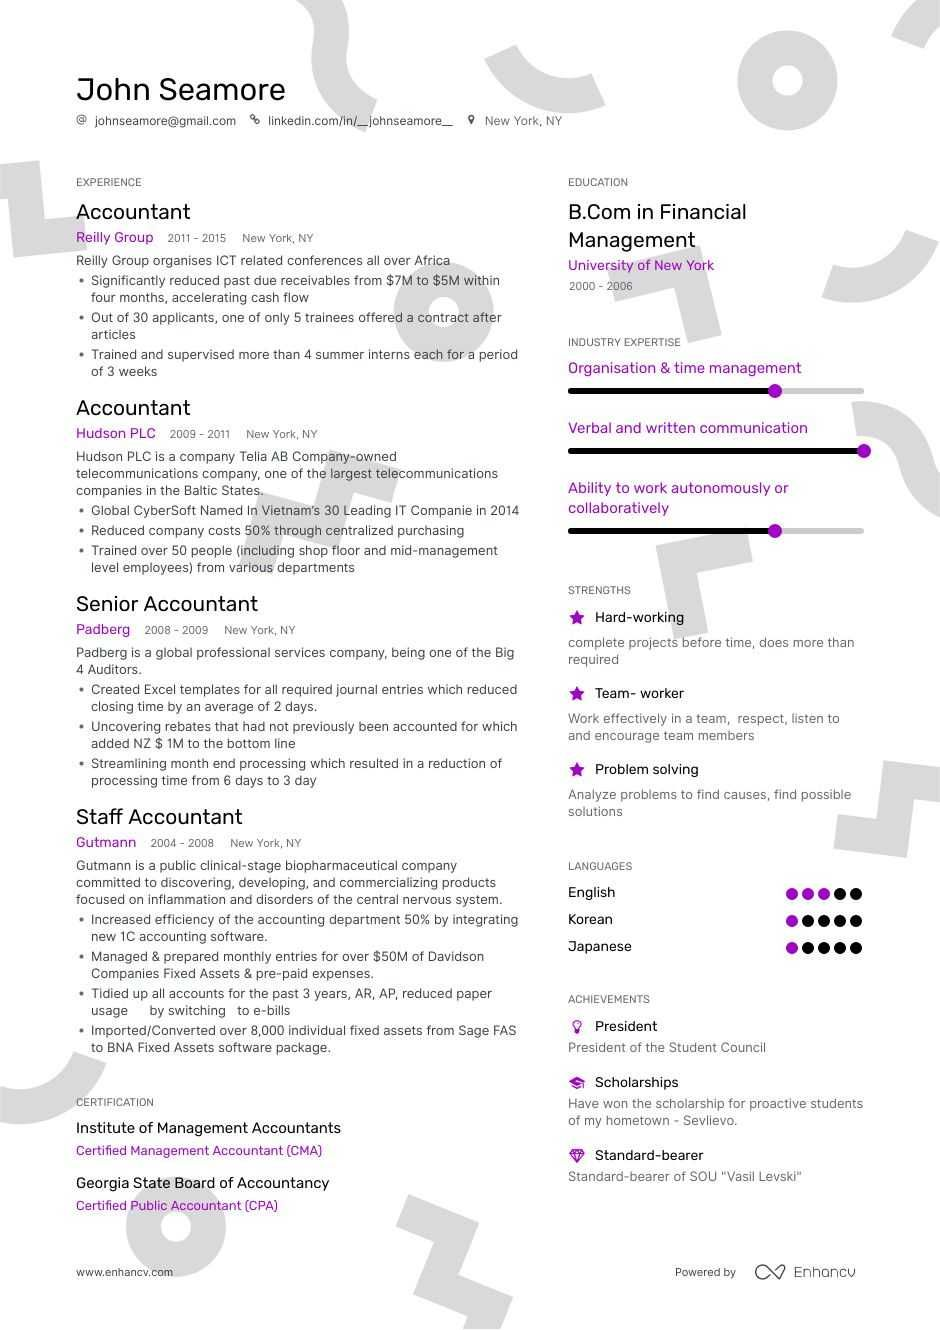 44+ resume accounting cv template in 2020 Resume